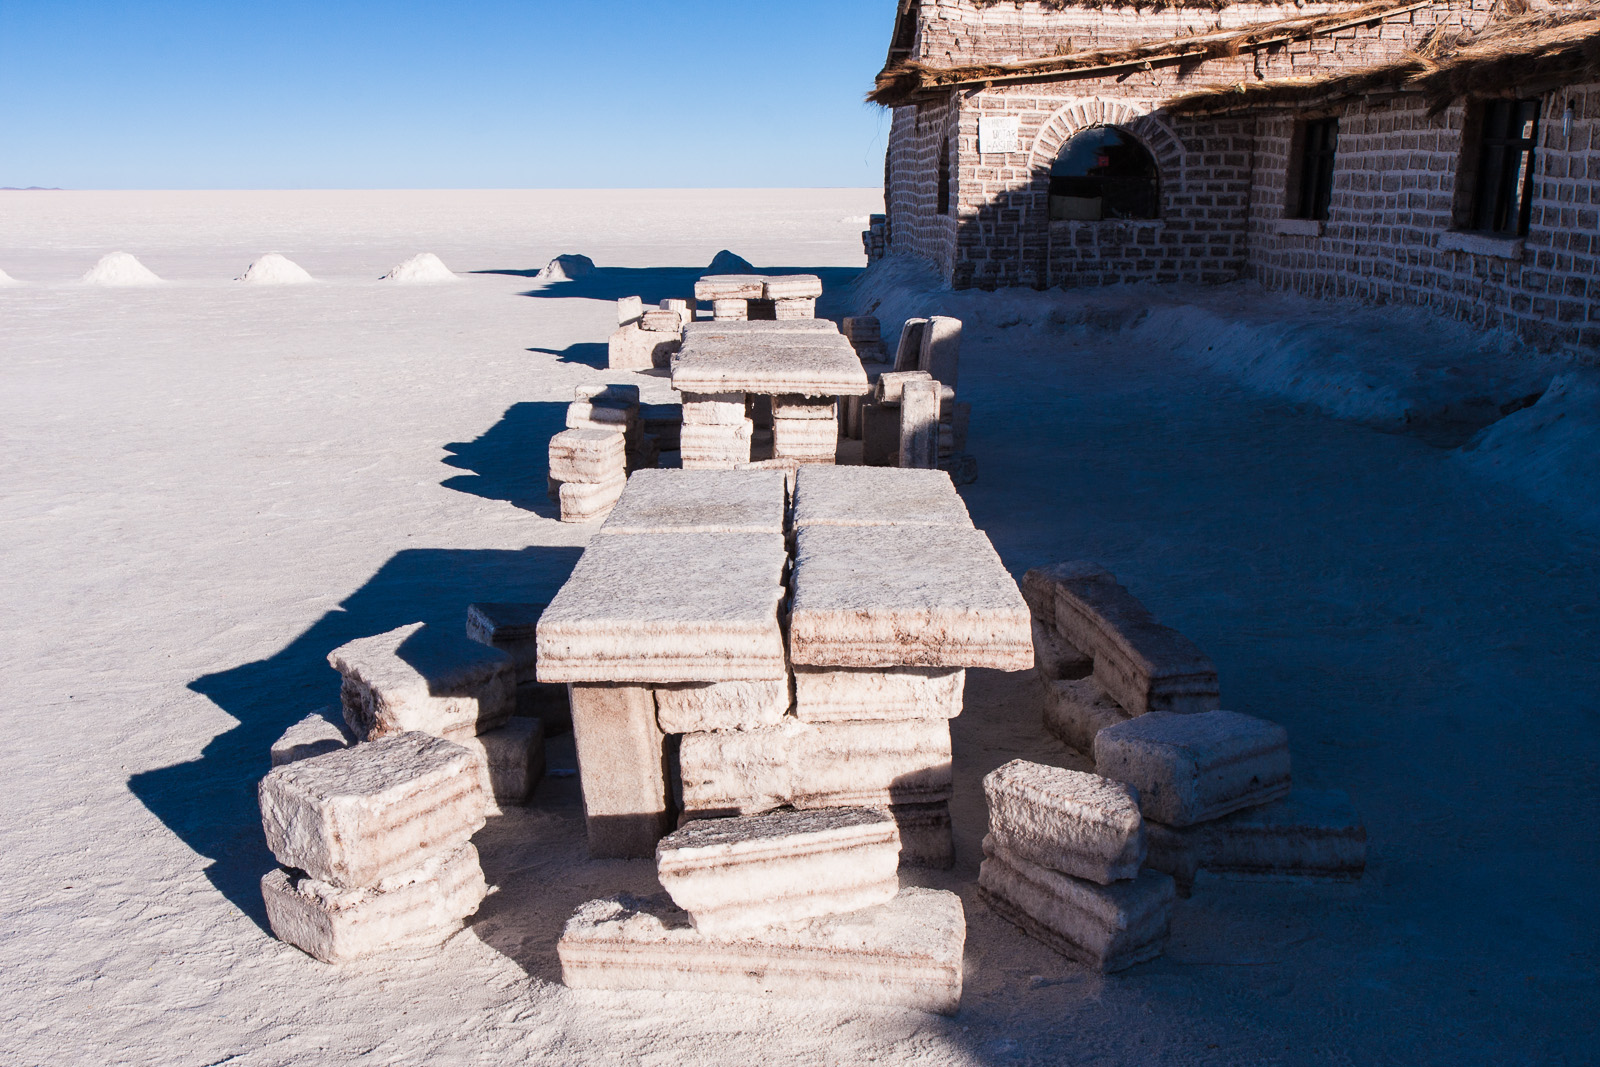 A salt hotel is no idle title – The building is made of salt, the table and chairs are made of salt, the beds are even made of salt.